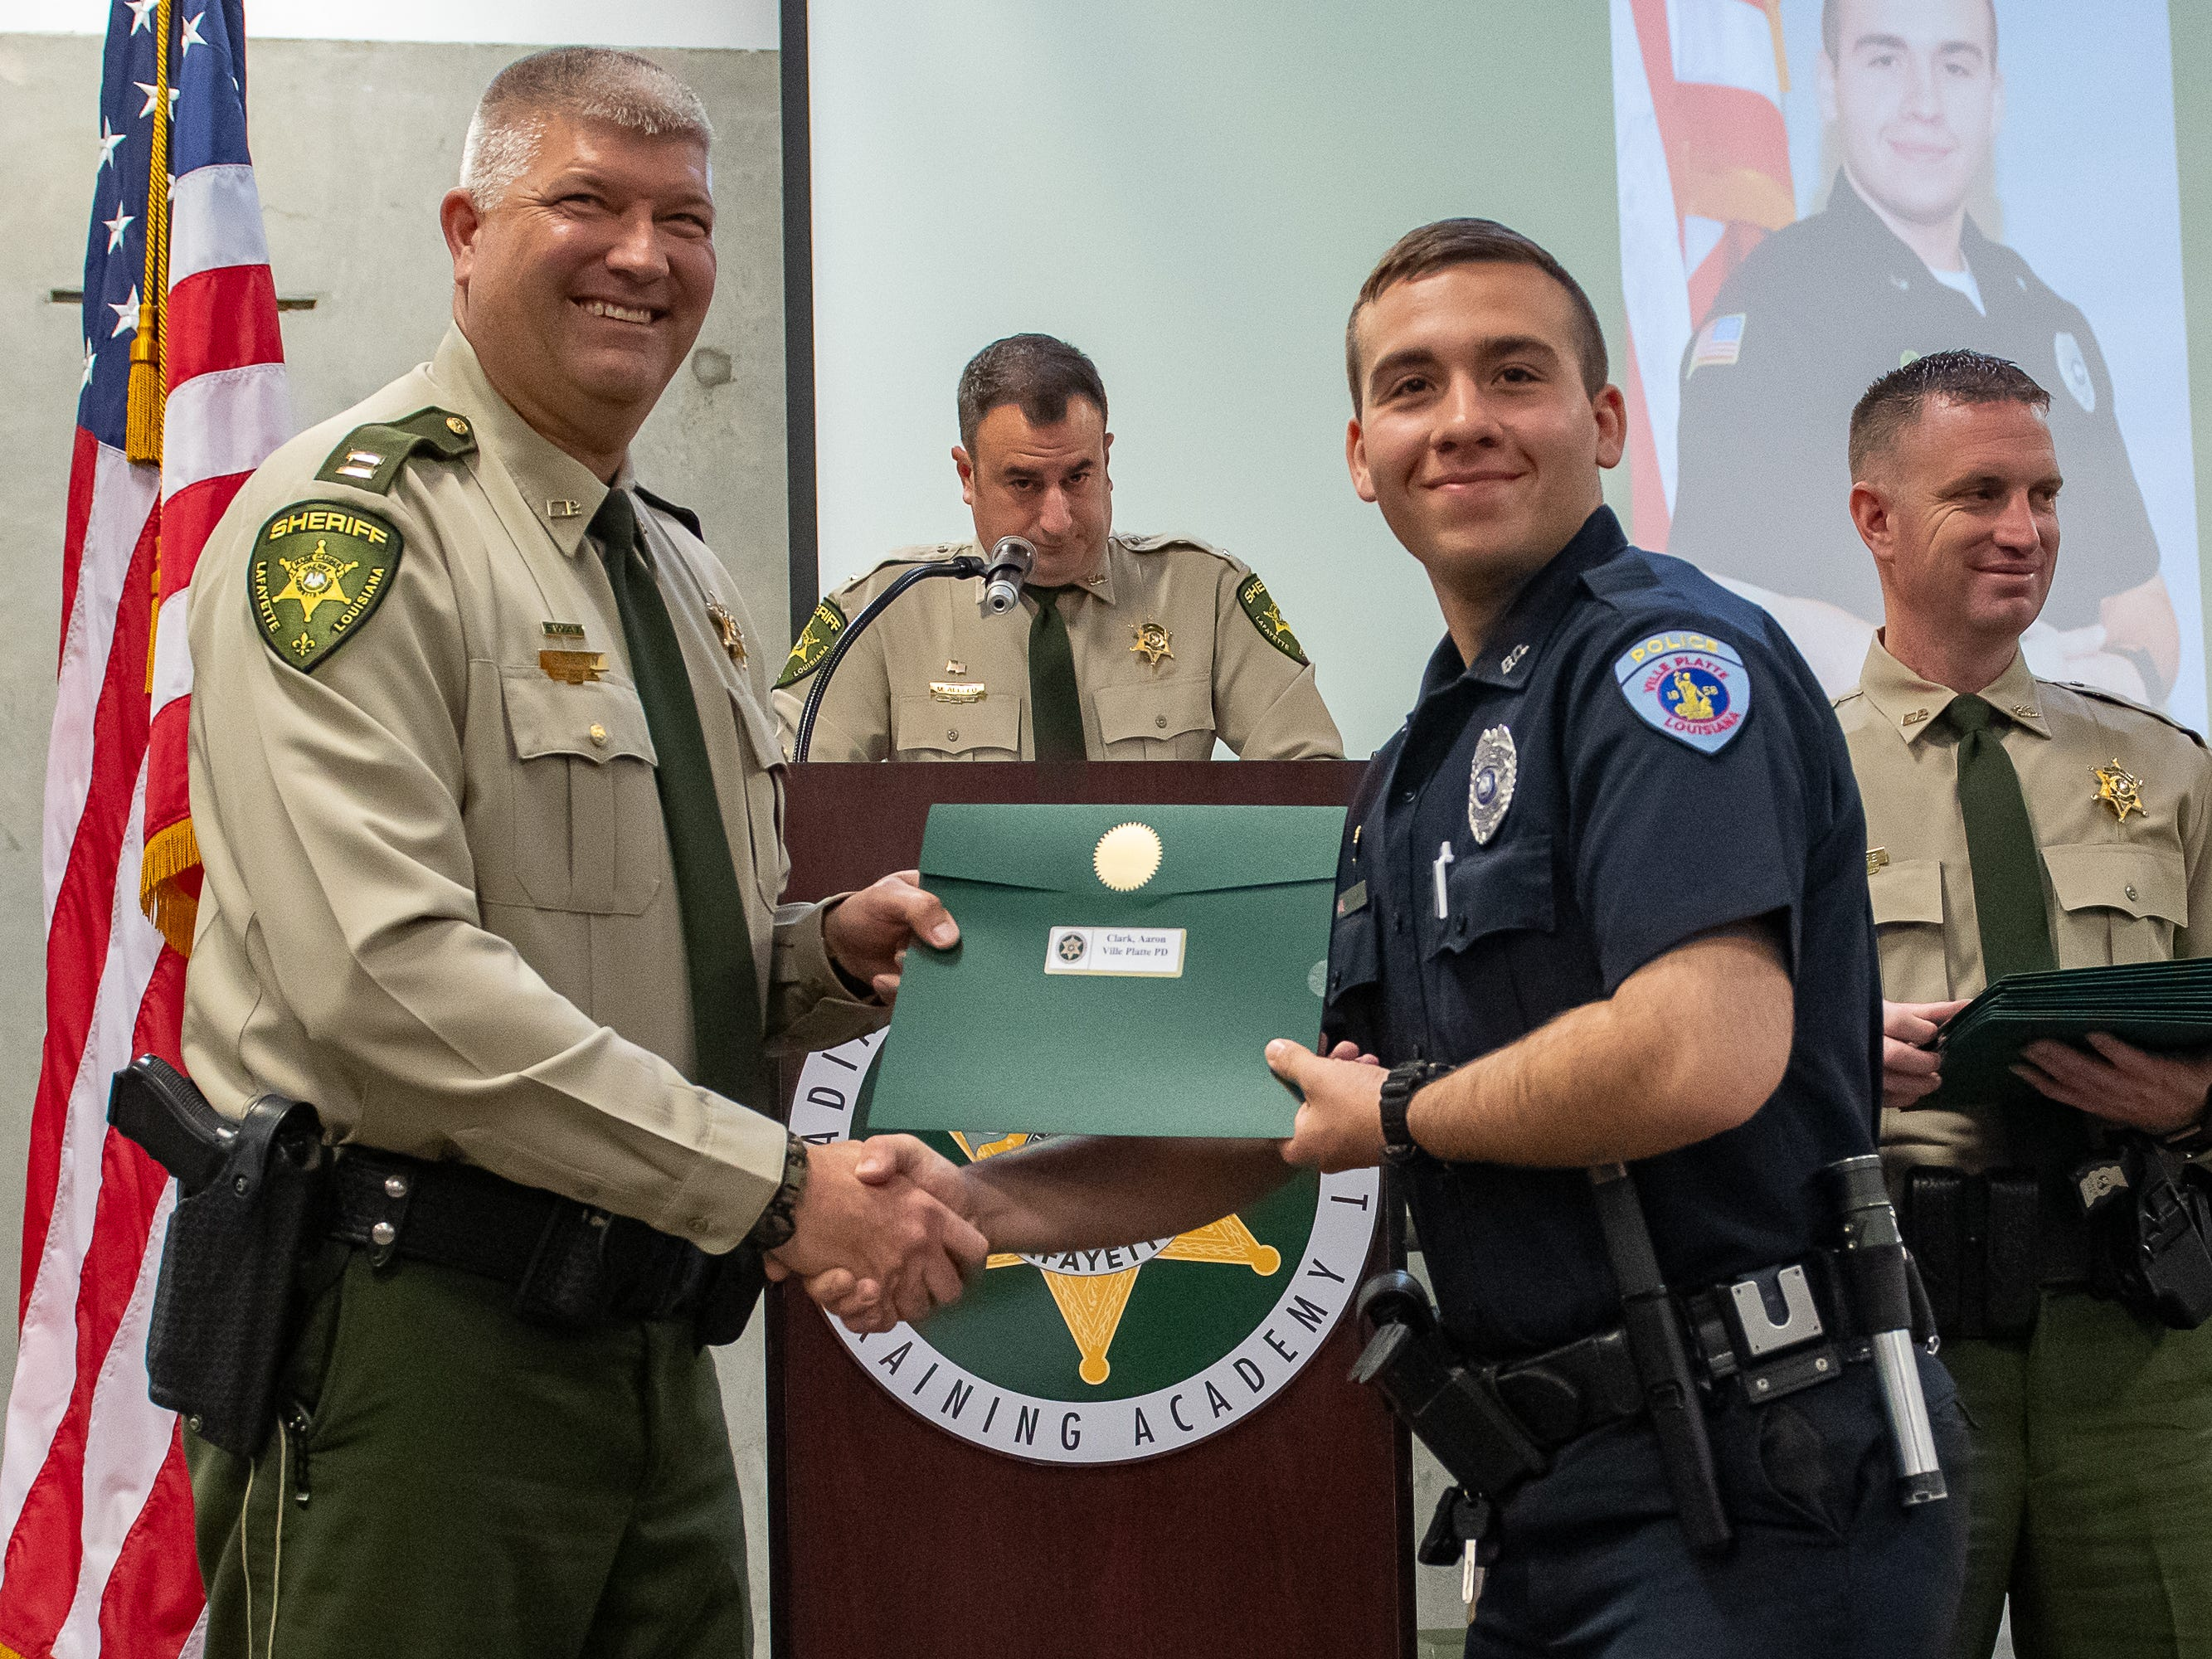 Aaron Clark at the Graduation of Acadiana Law Enforcement Training Academy Class 159. Friday, April 12, 2019.